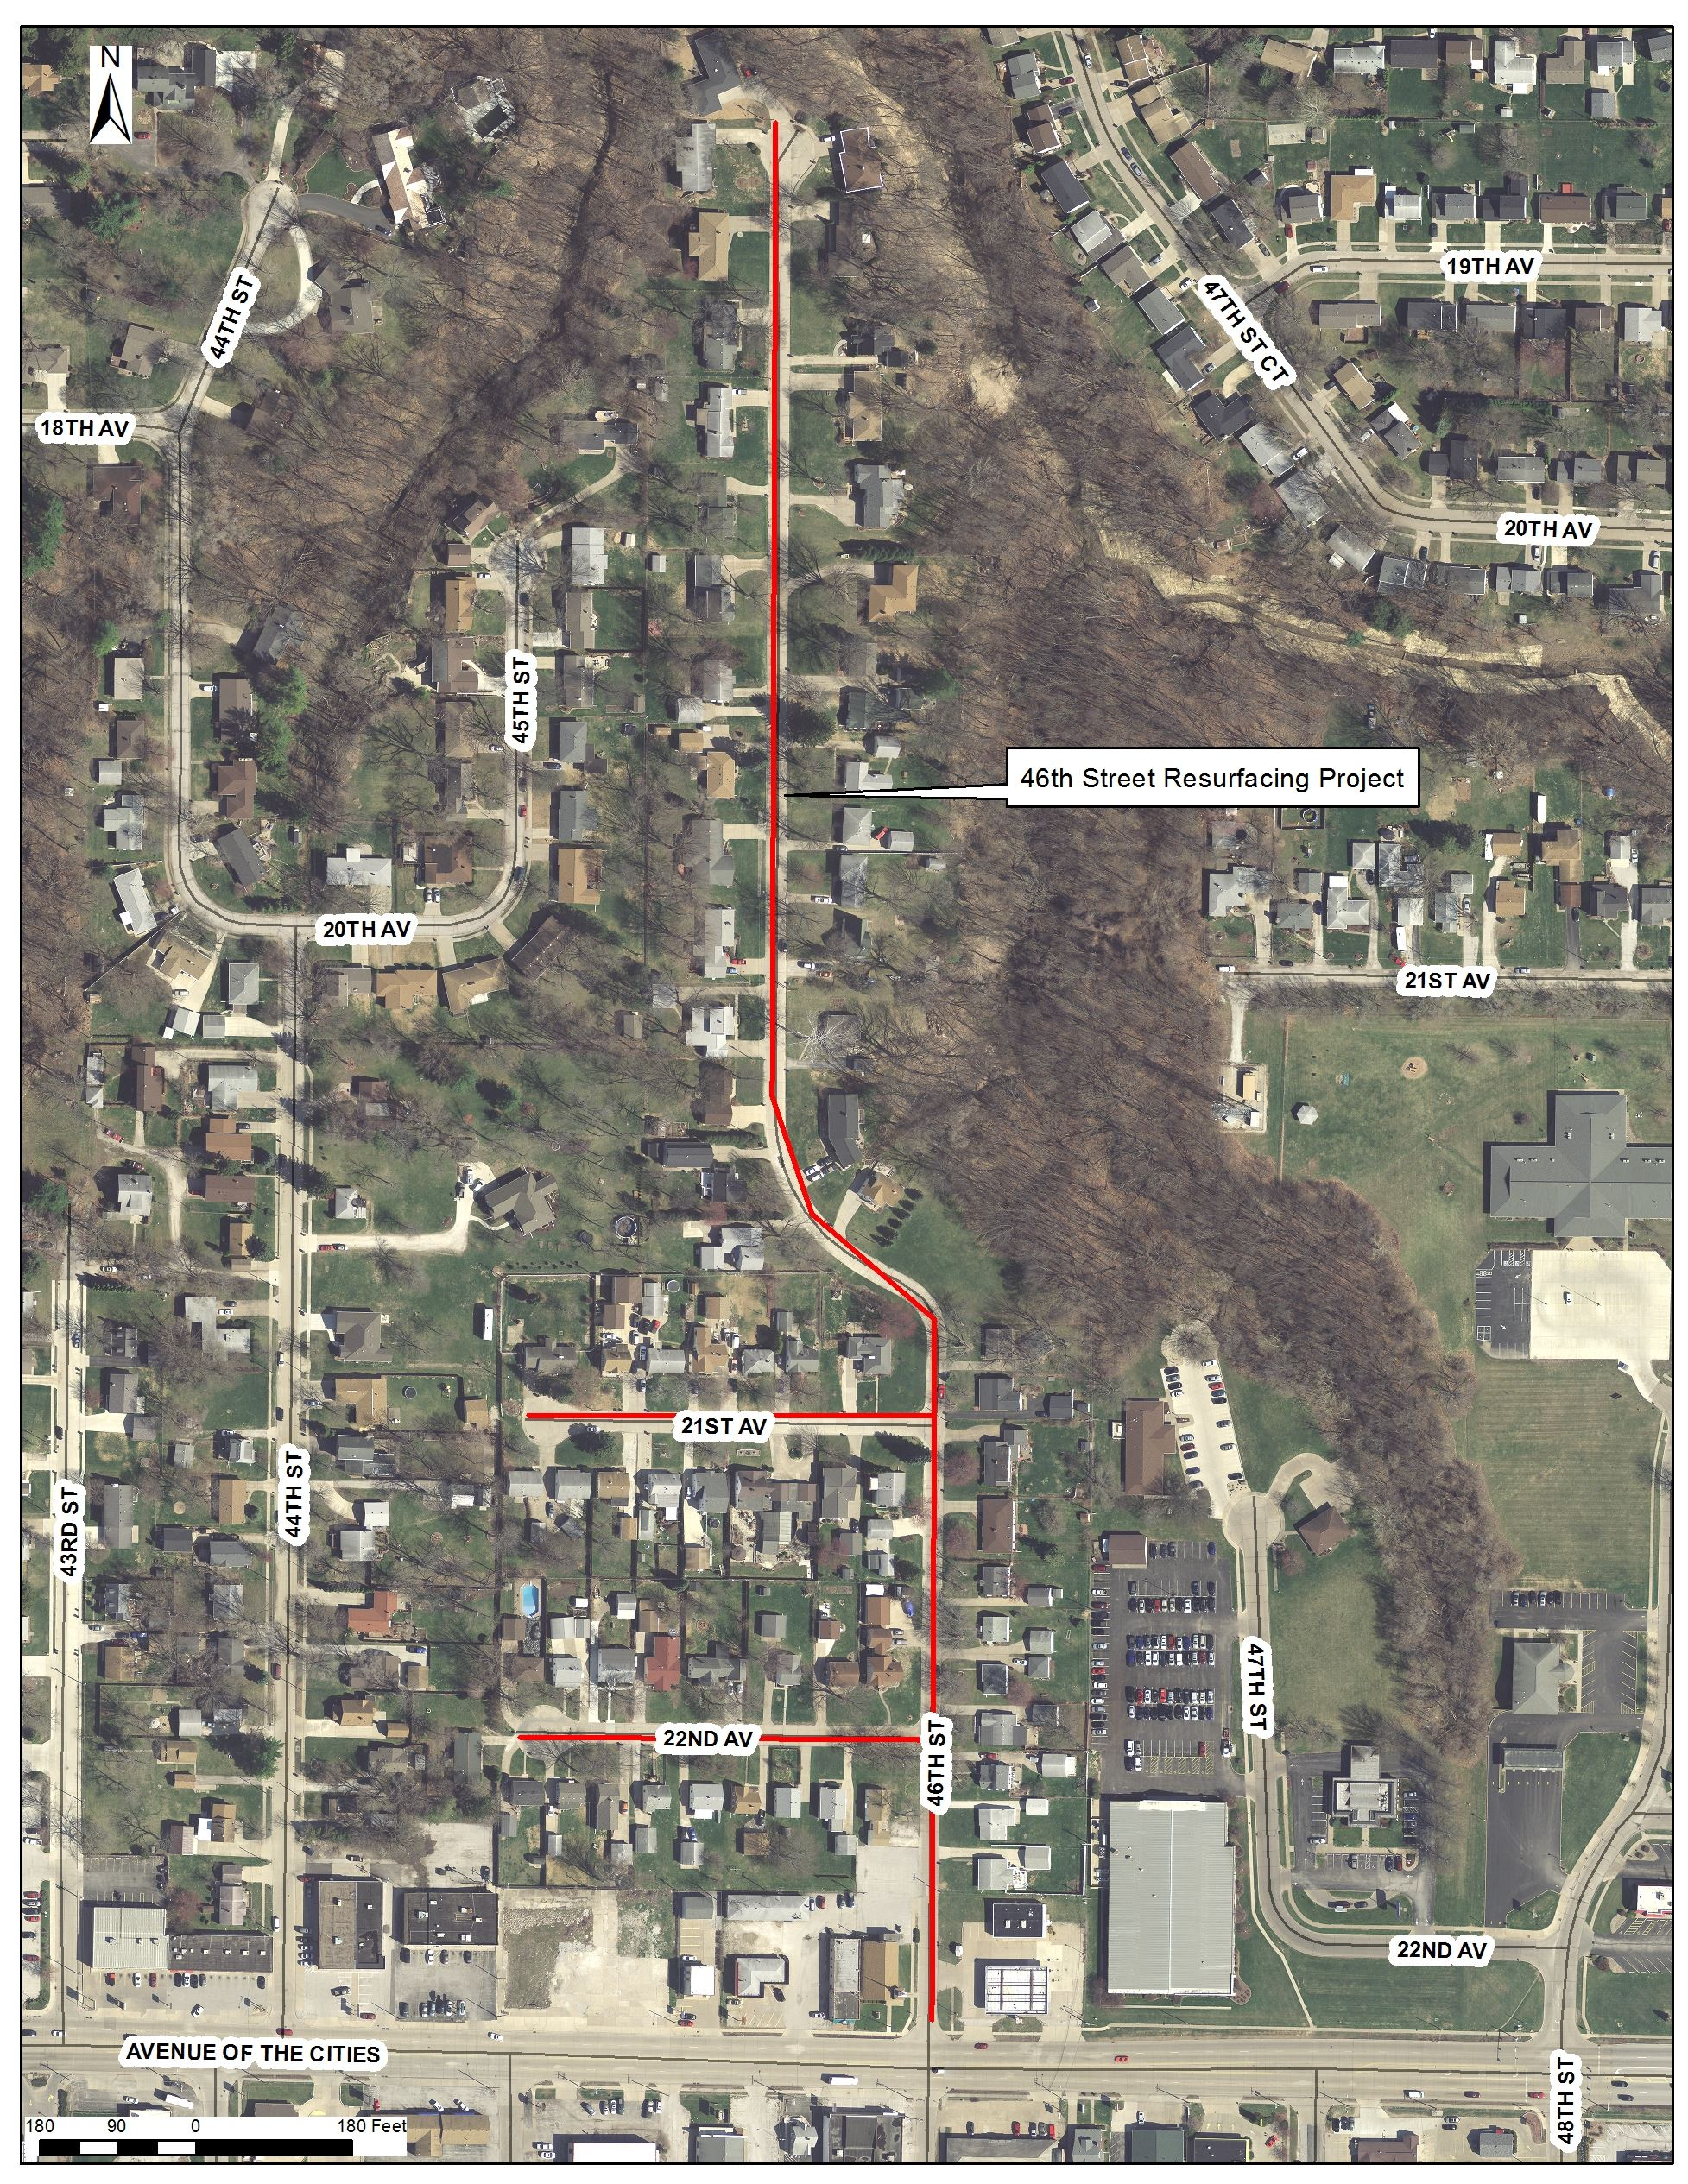 46th Street Resurfacing Project